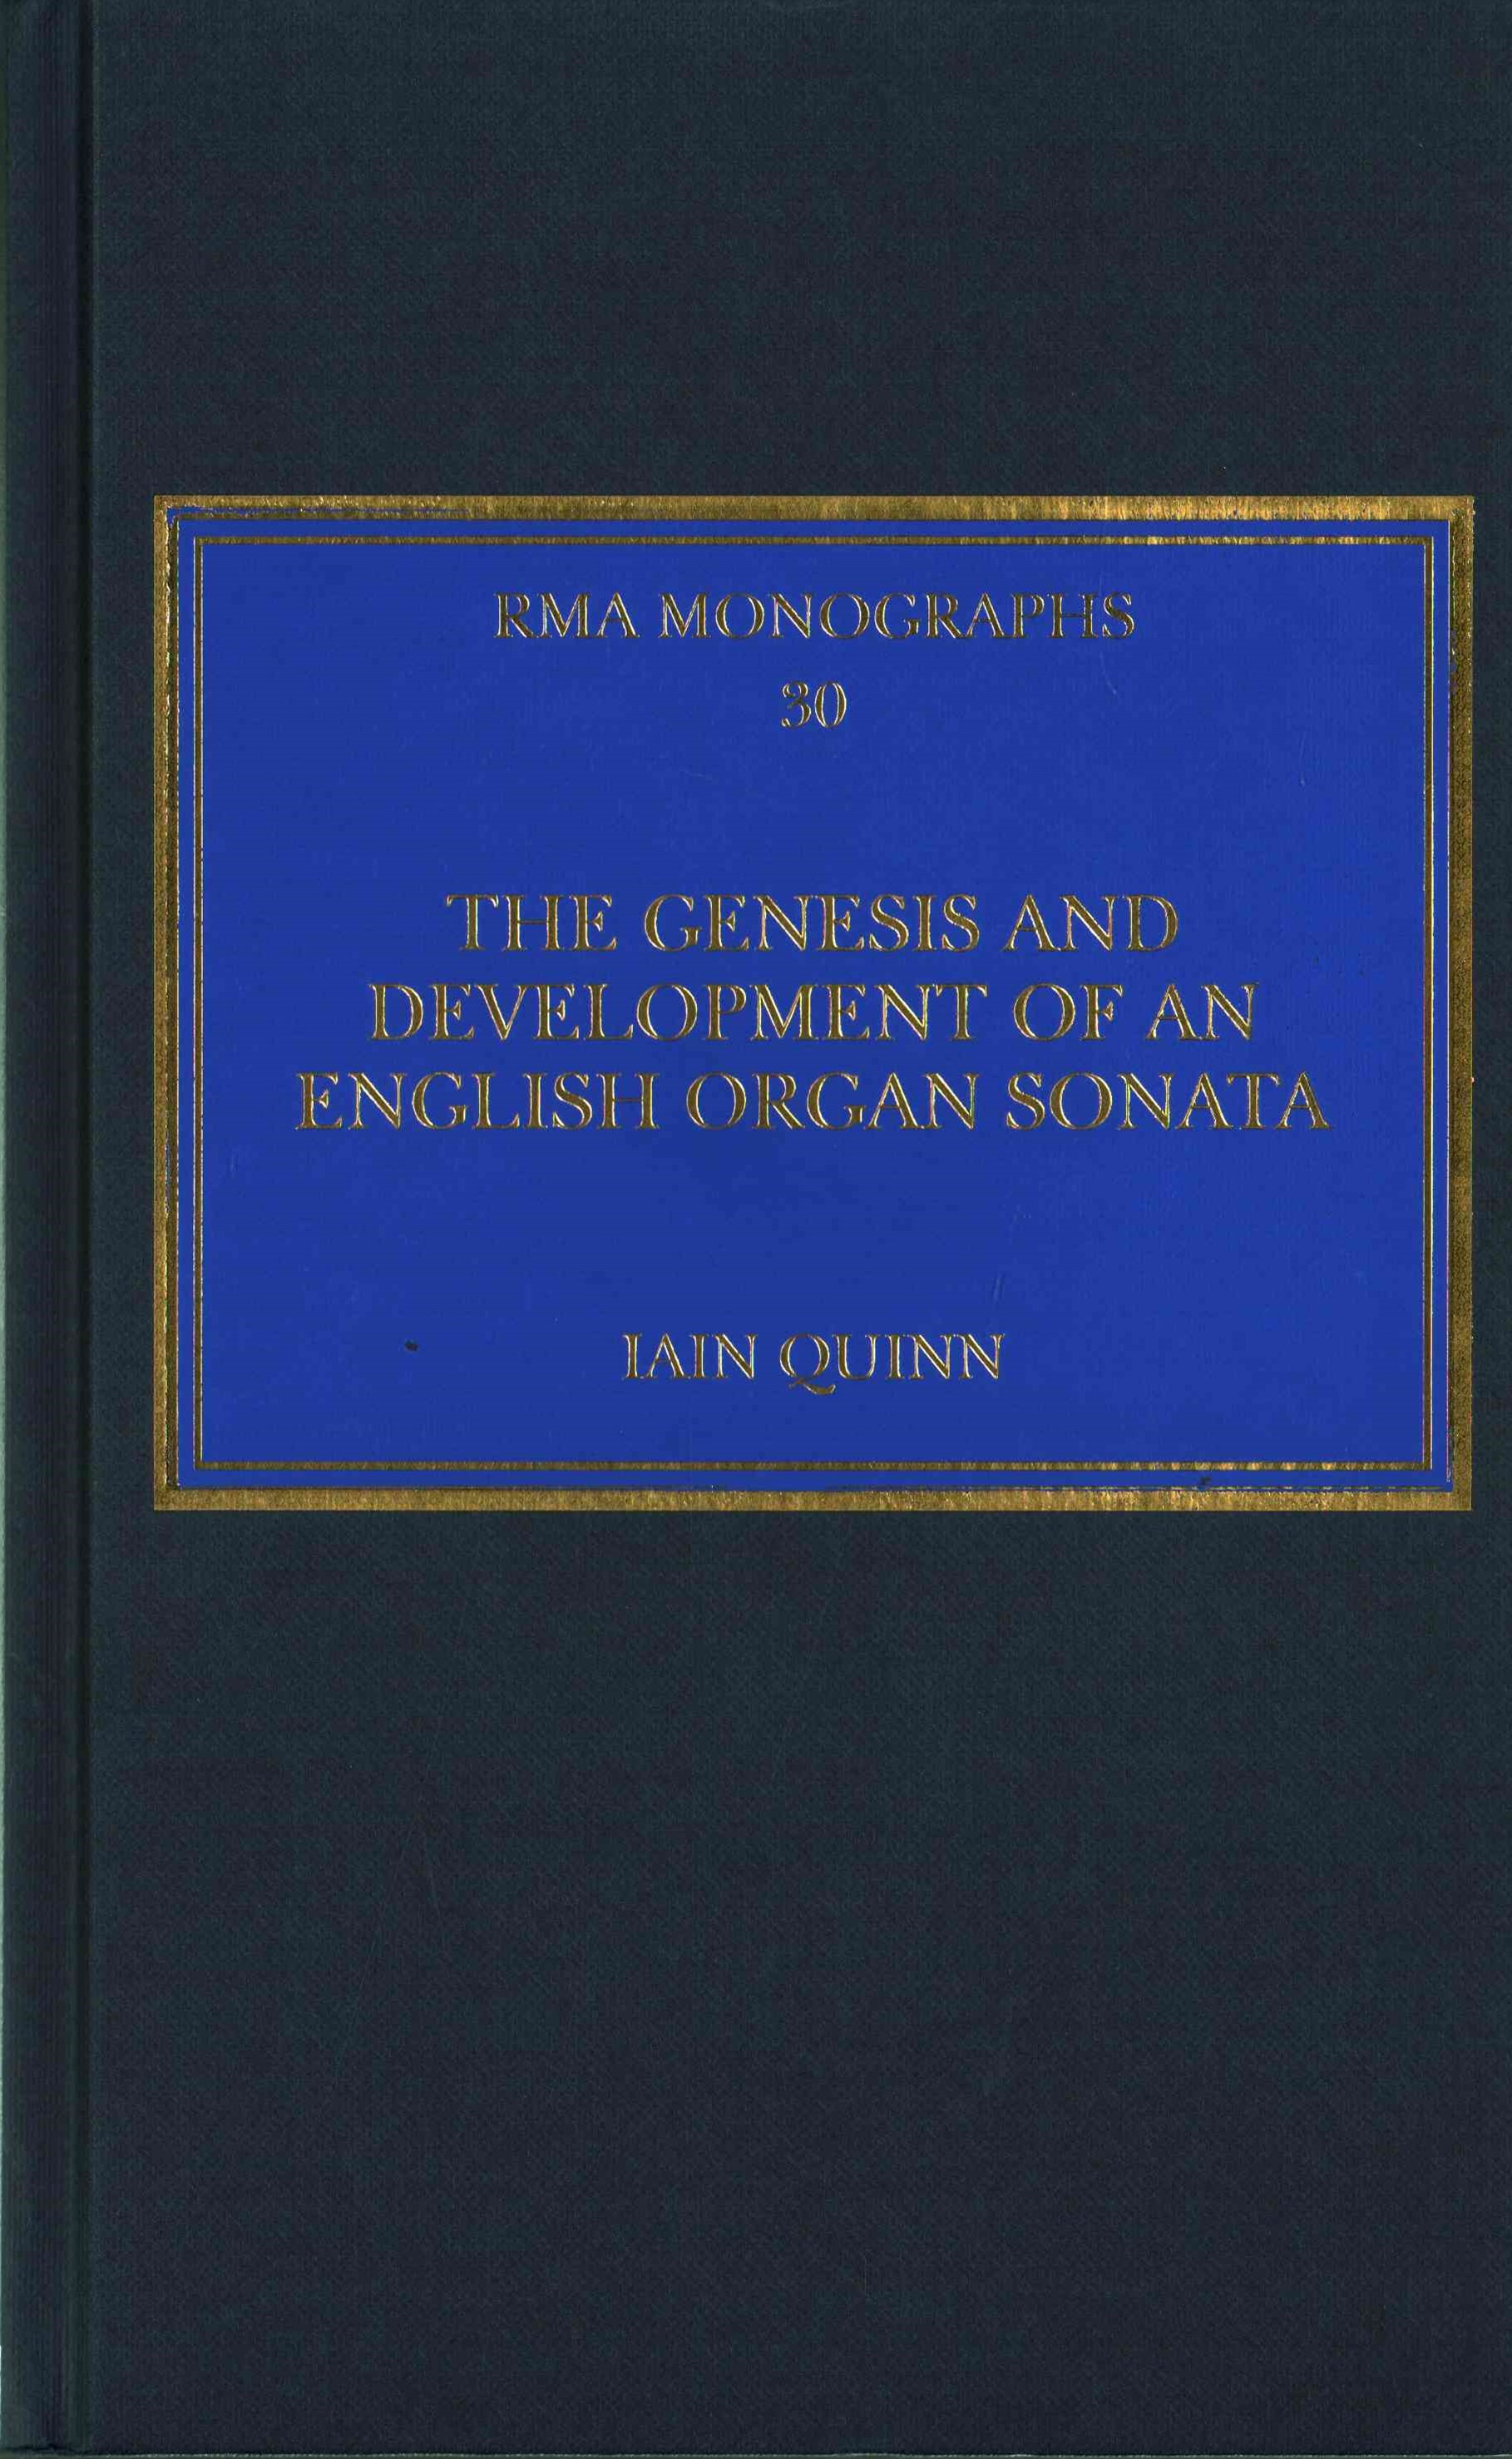 Genesis and Development of an English Organ Sonata